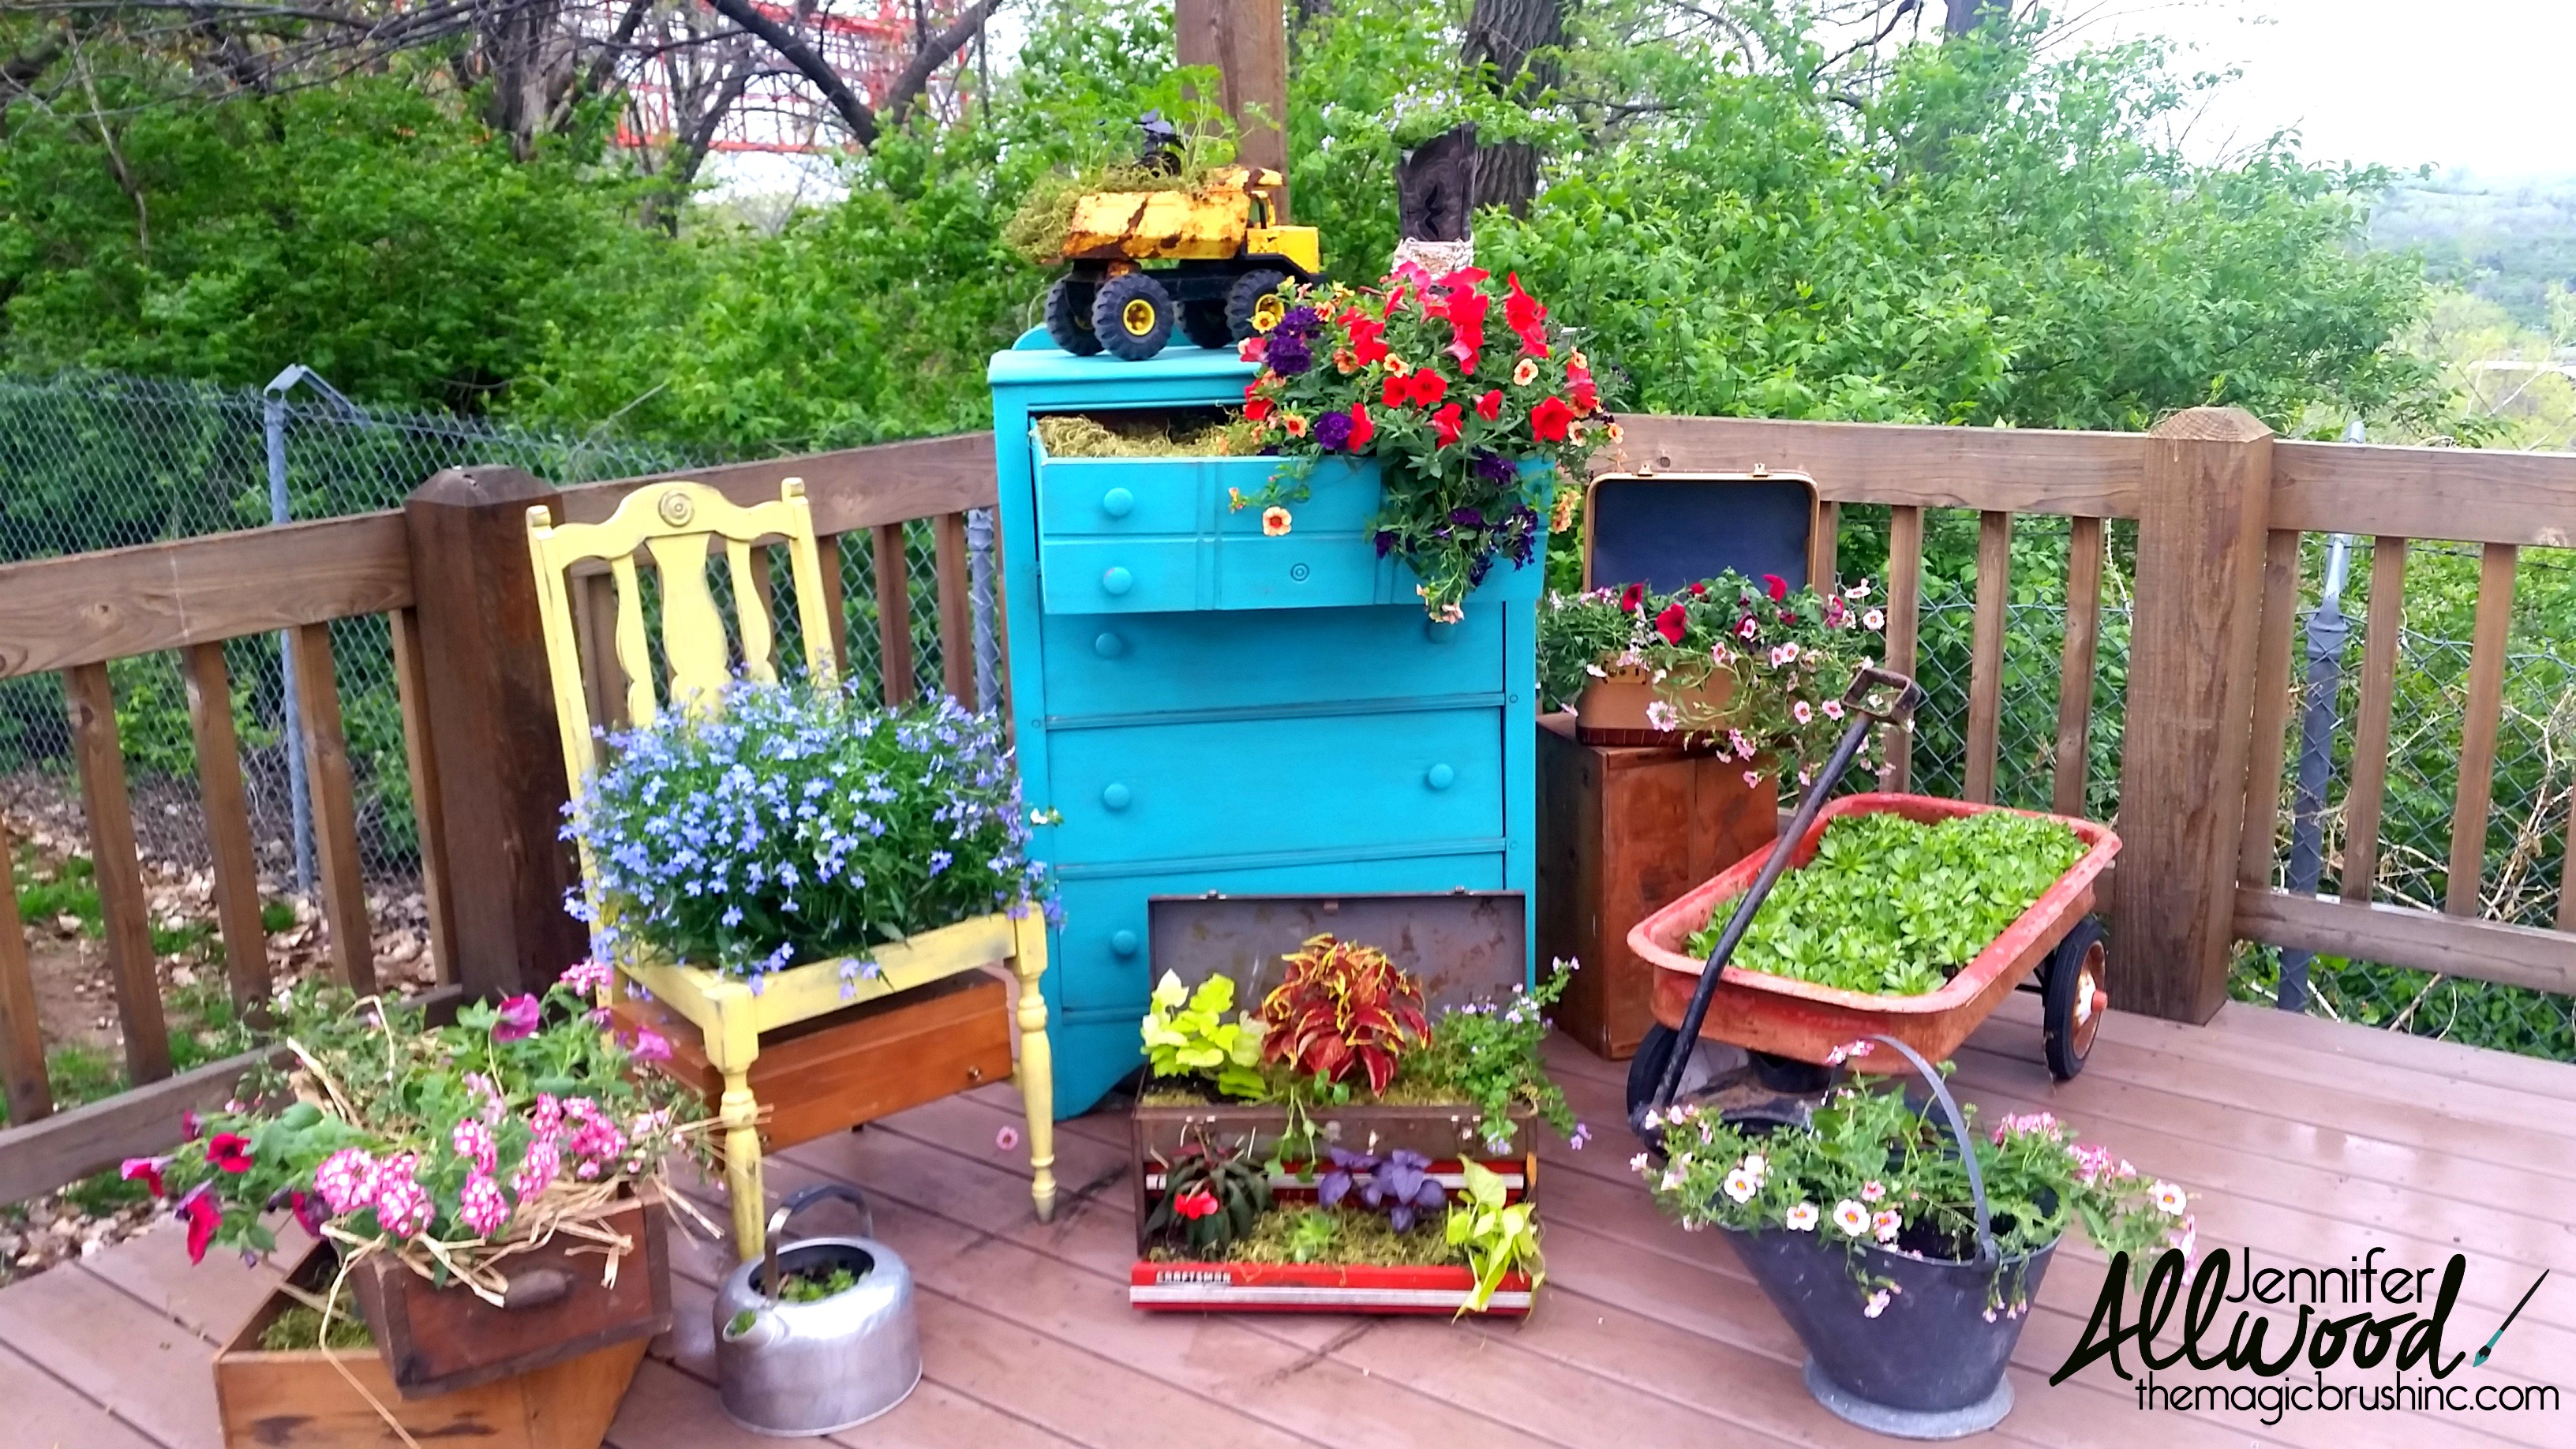 10 great diy garden ideas you have to know thethings - Unique container gardening ideas ...